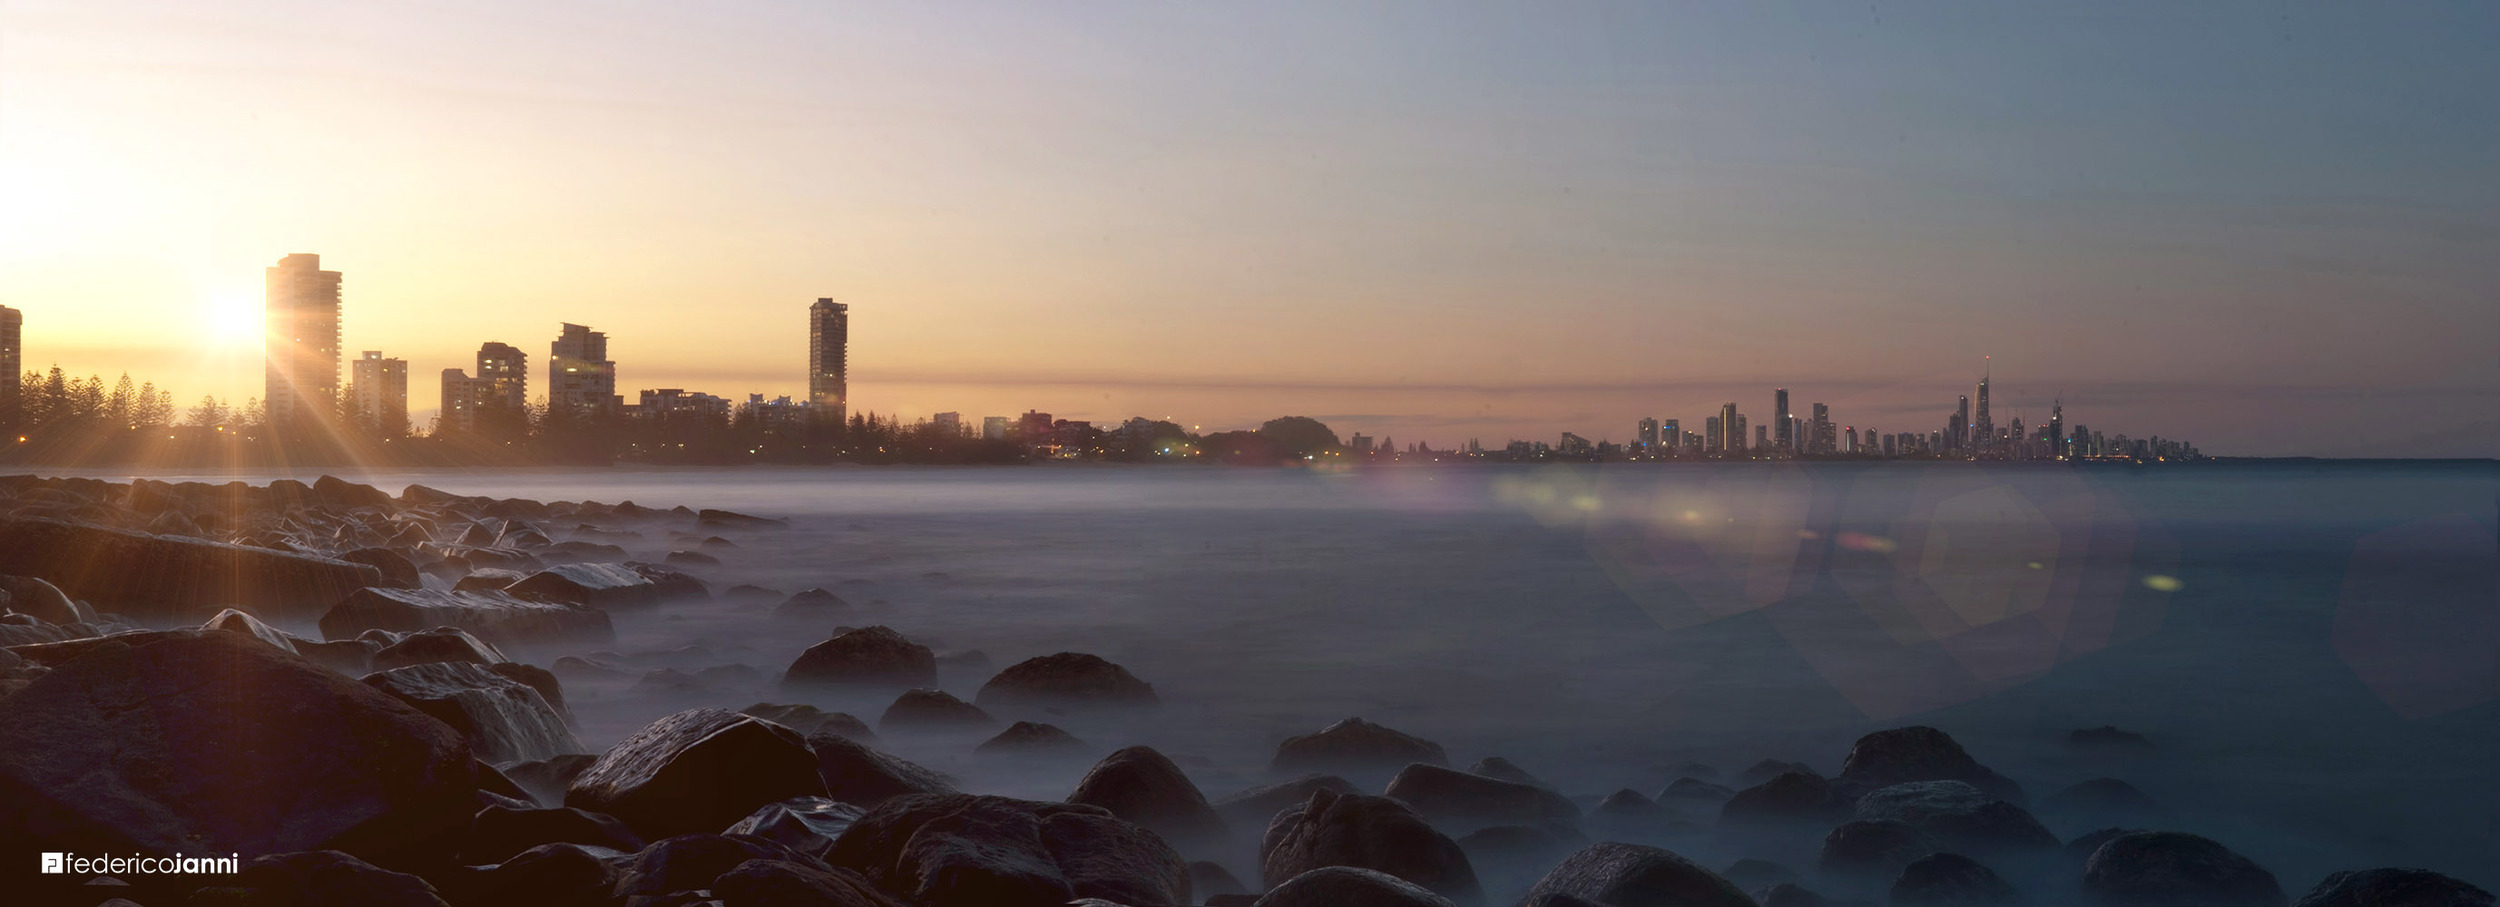 Burleigh Heads, Queensland, Australia.